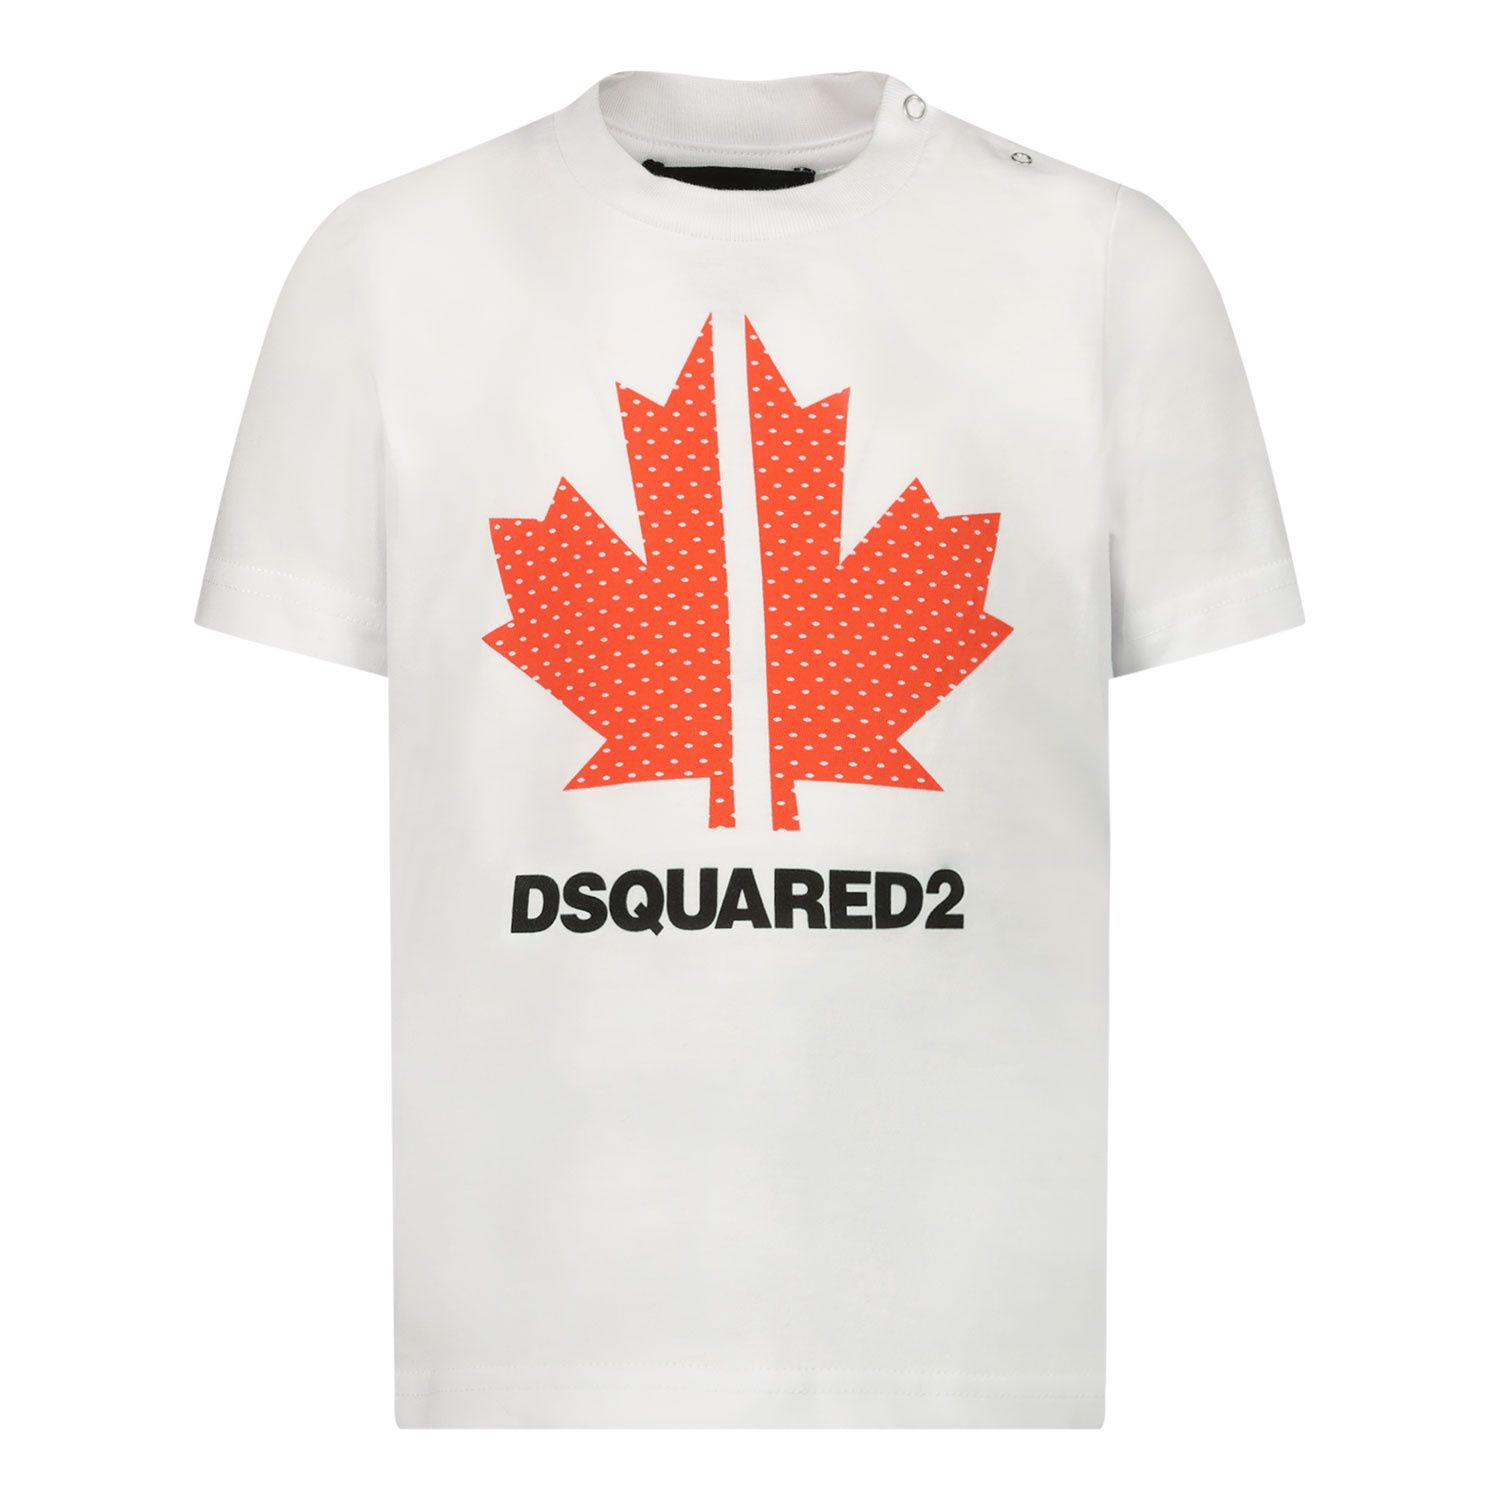 Picture of Dsquared2 DQ0029 baby shirt white